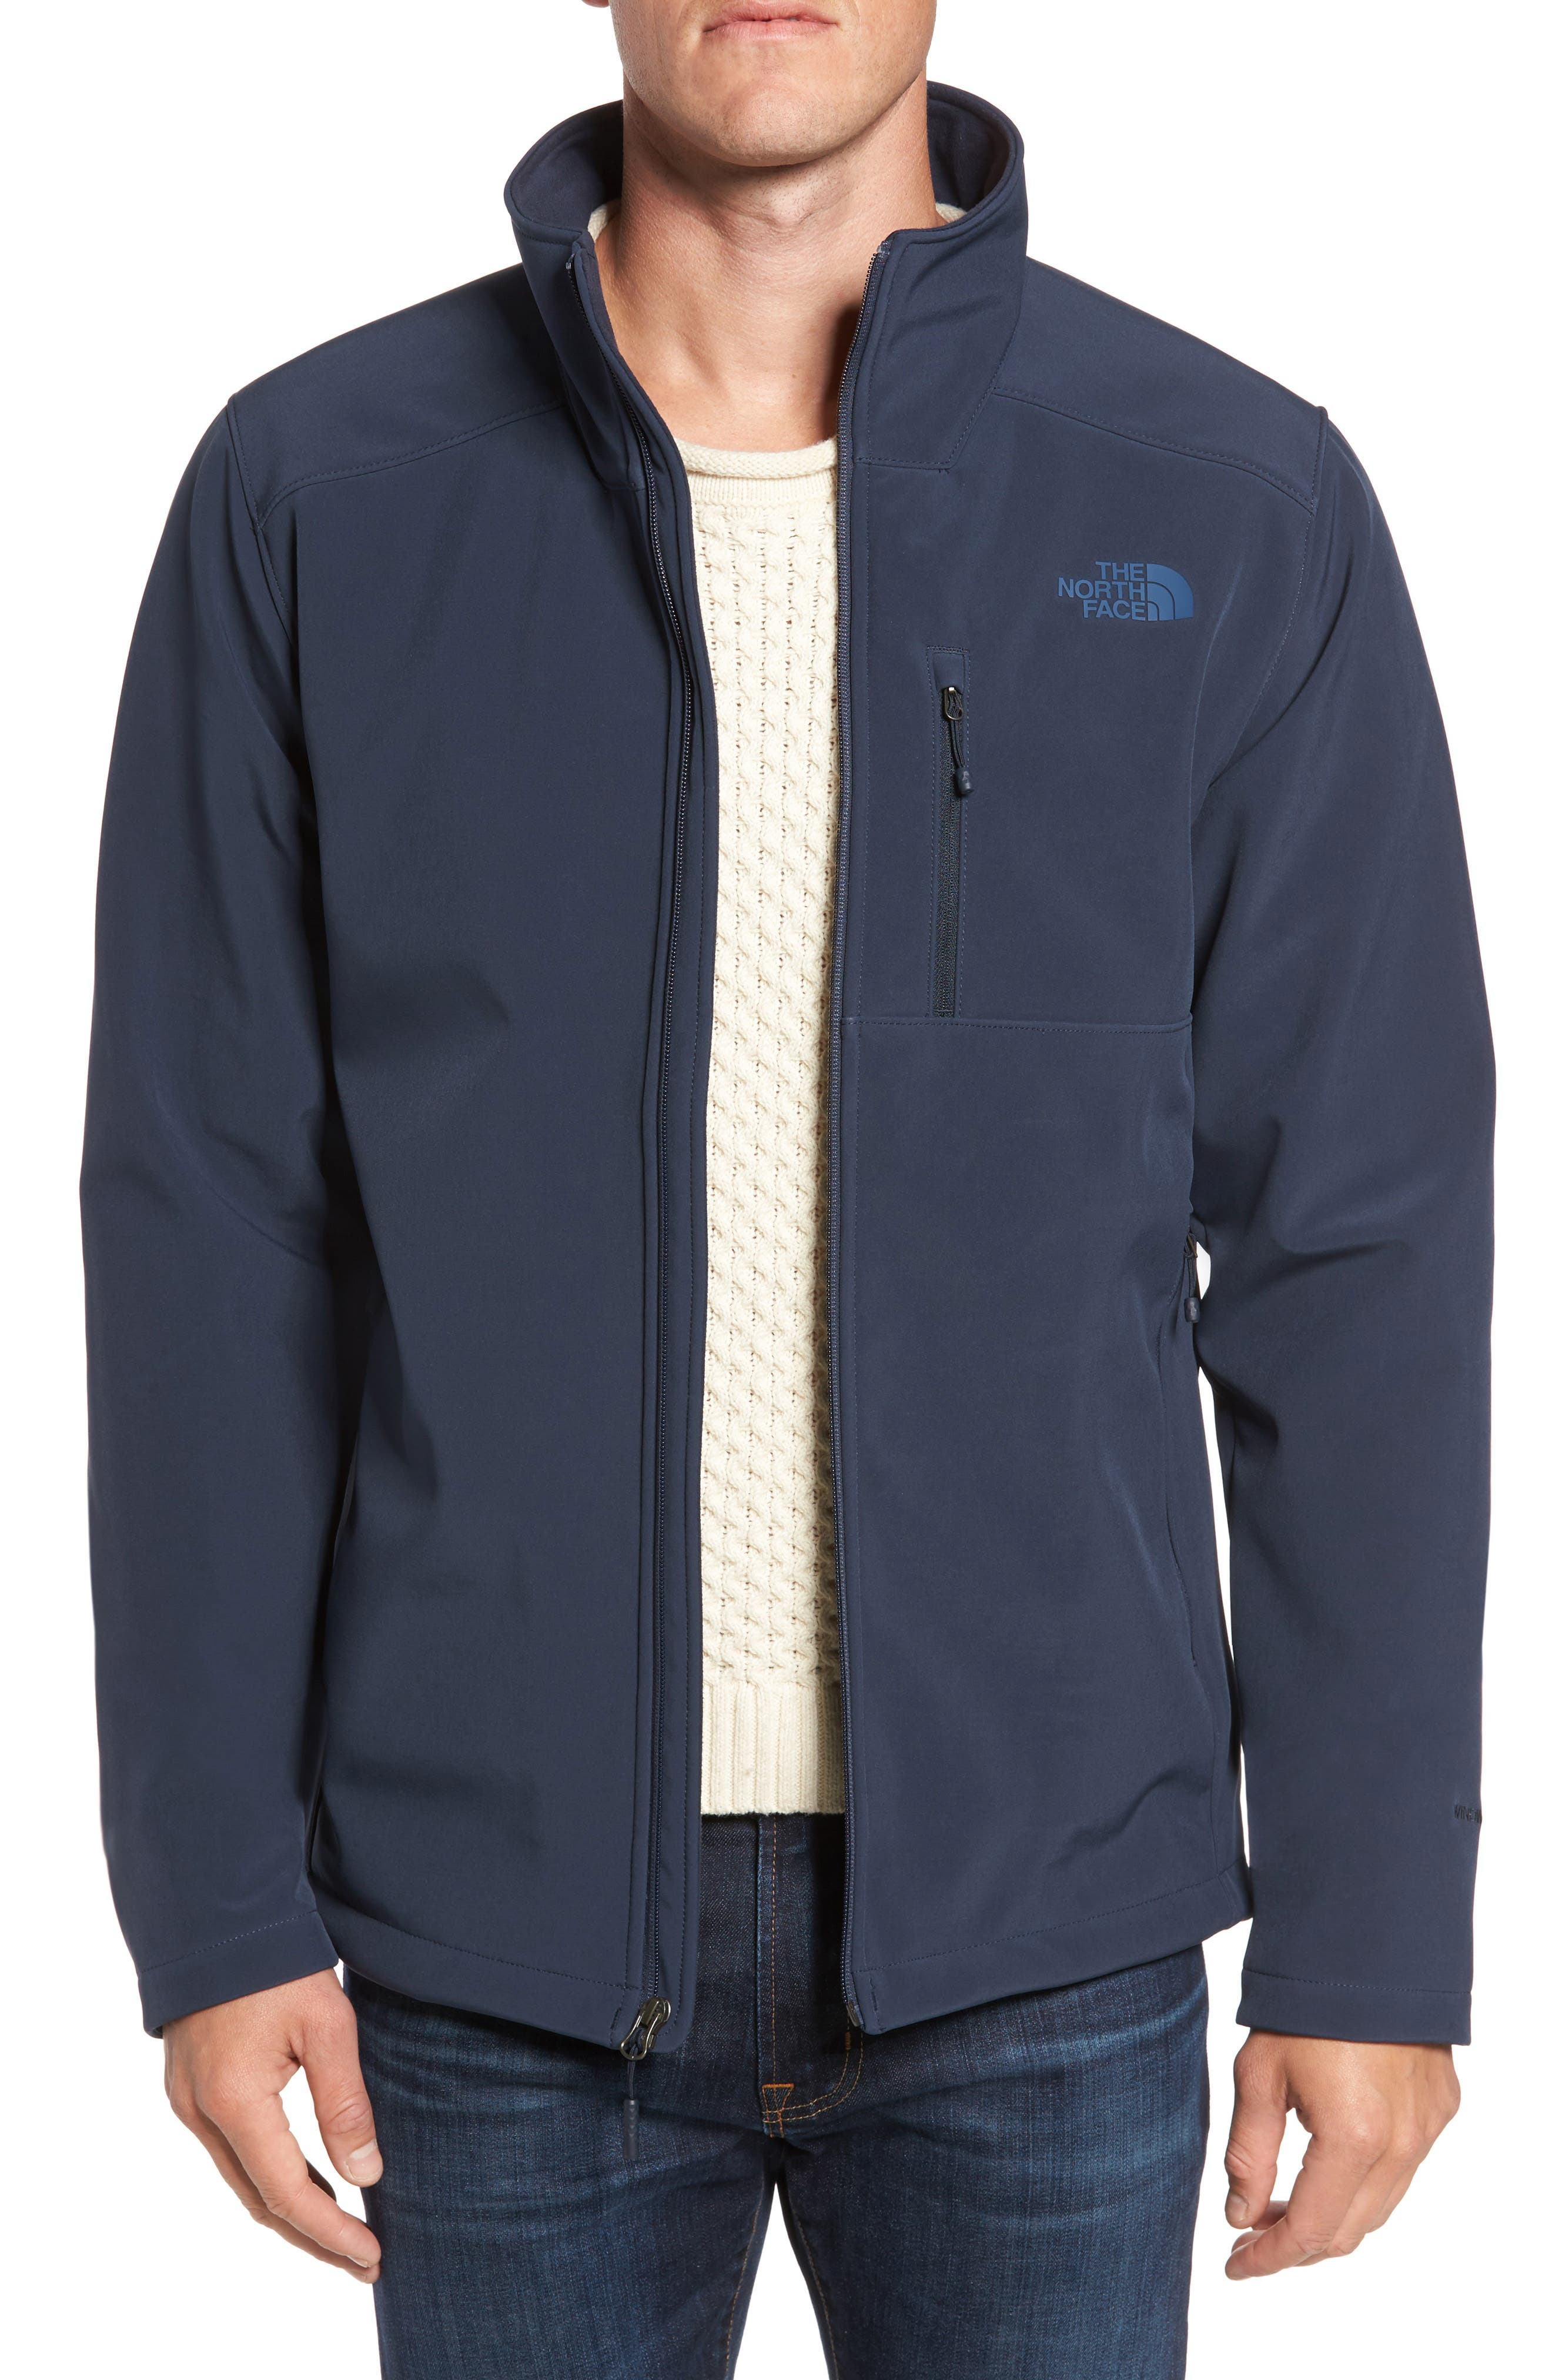 The North Face Apex Bionic 2 Water Repellent Jacket (Tall)